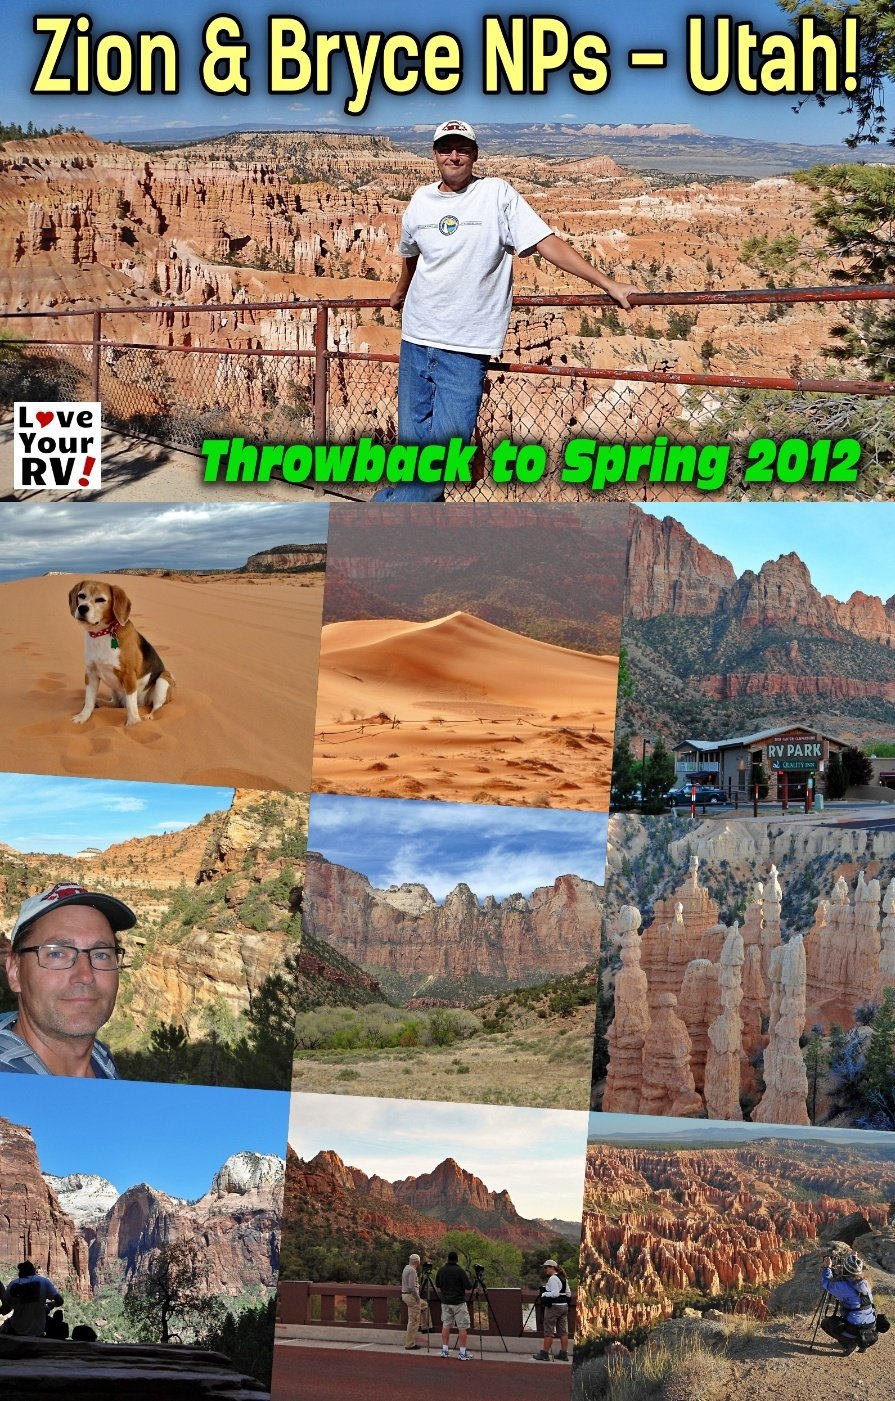 Visits to Zion and Bryce National Parks in Spring 2012 Throwback Video Series